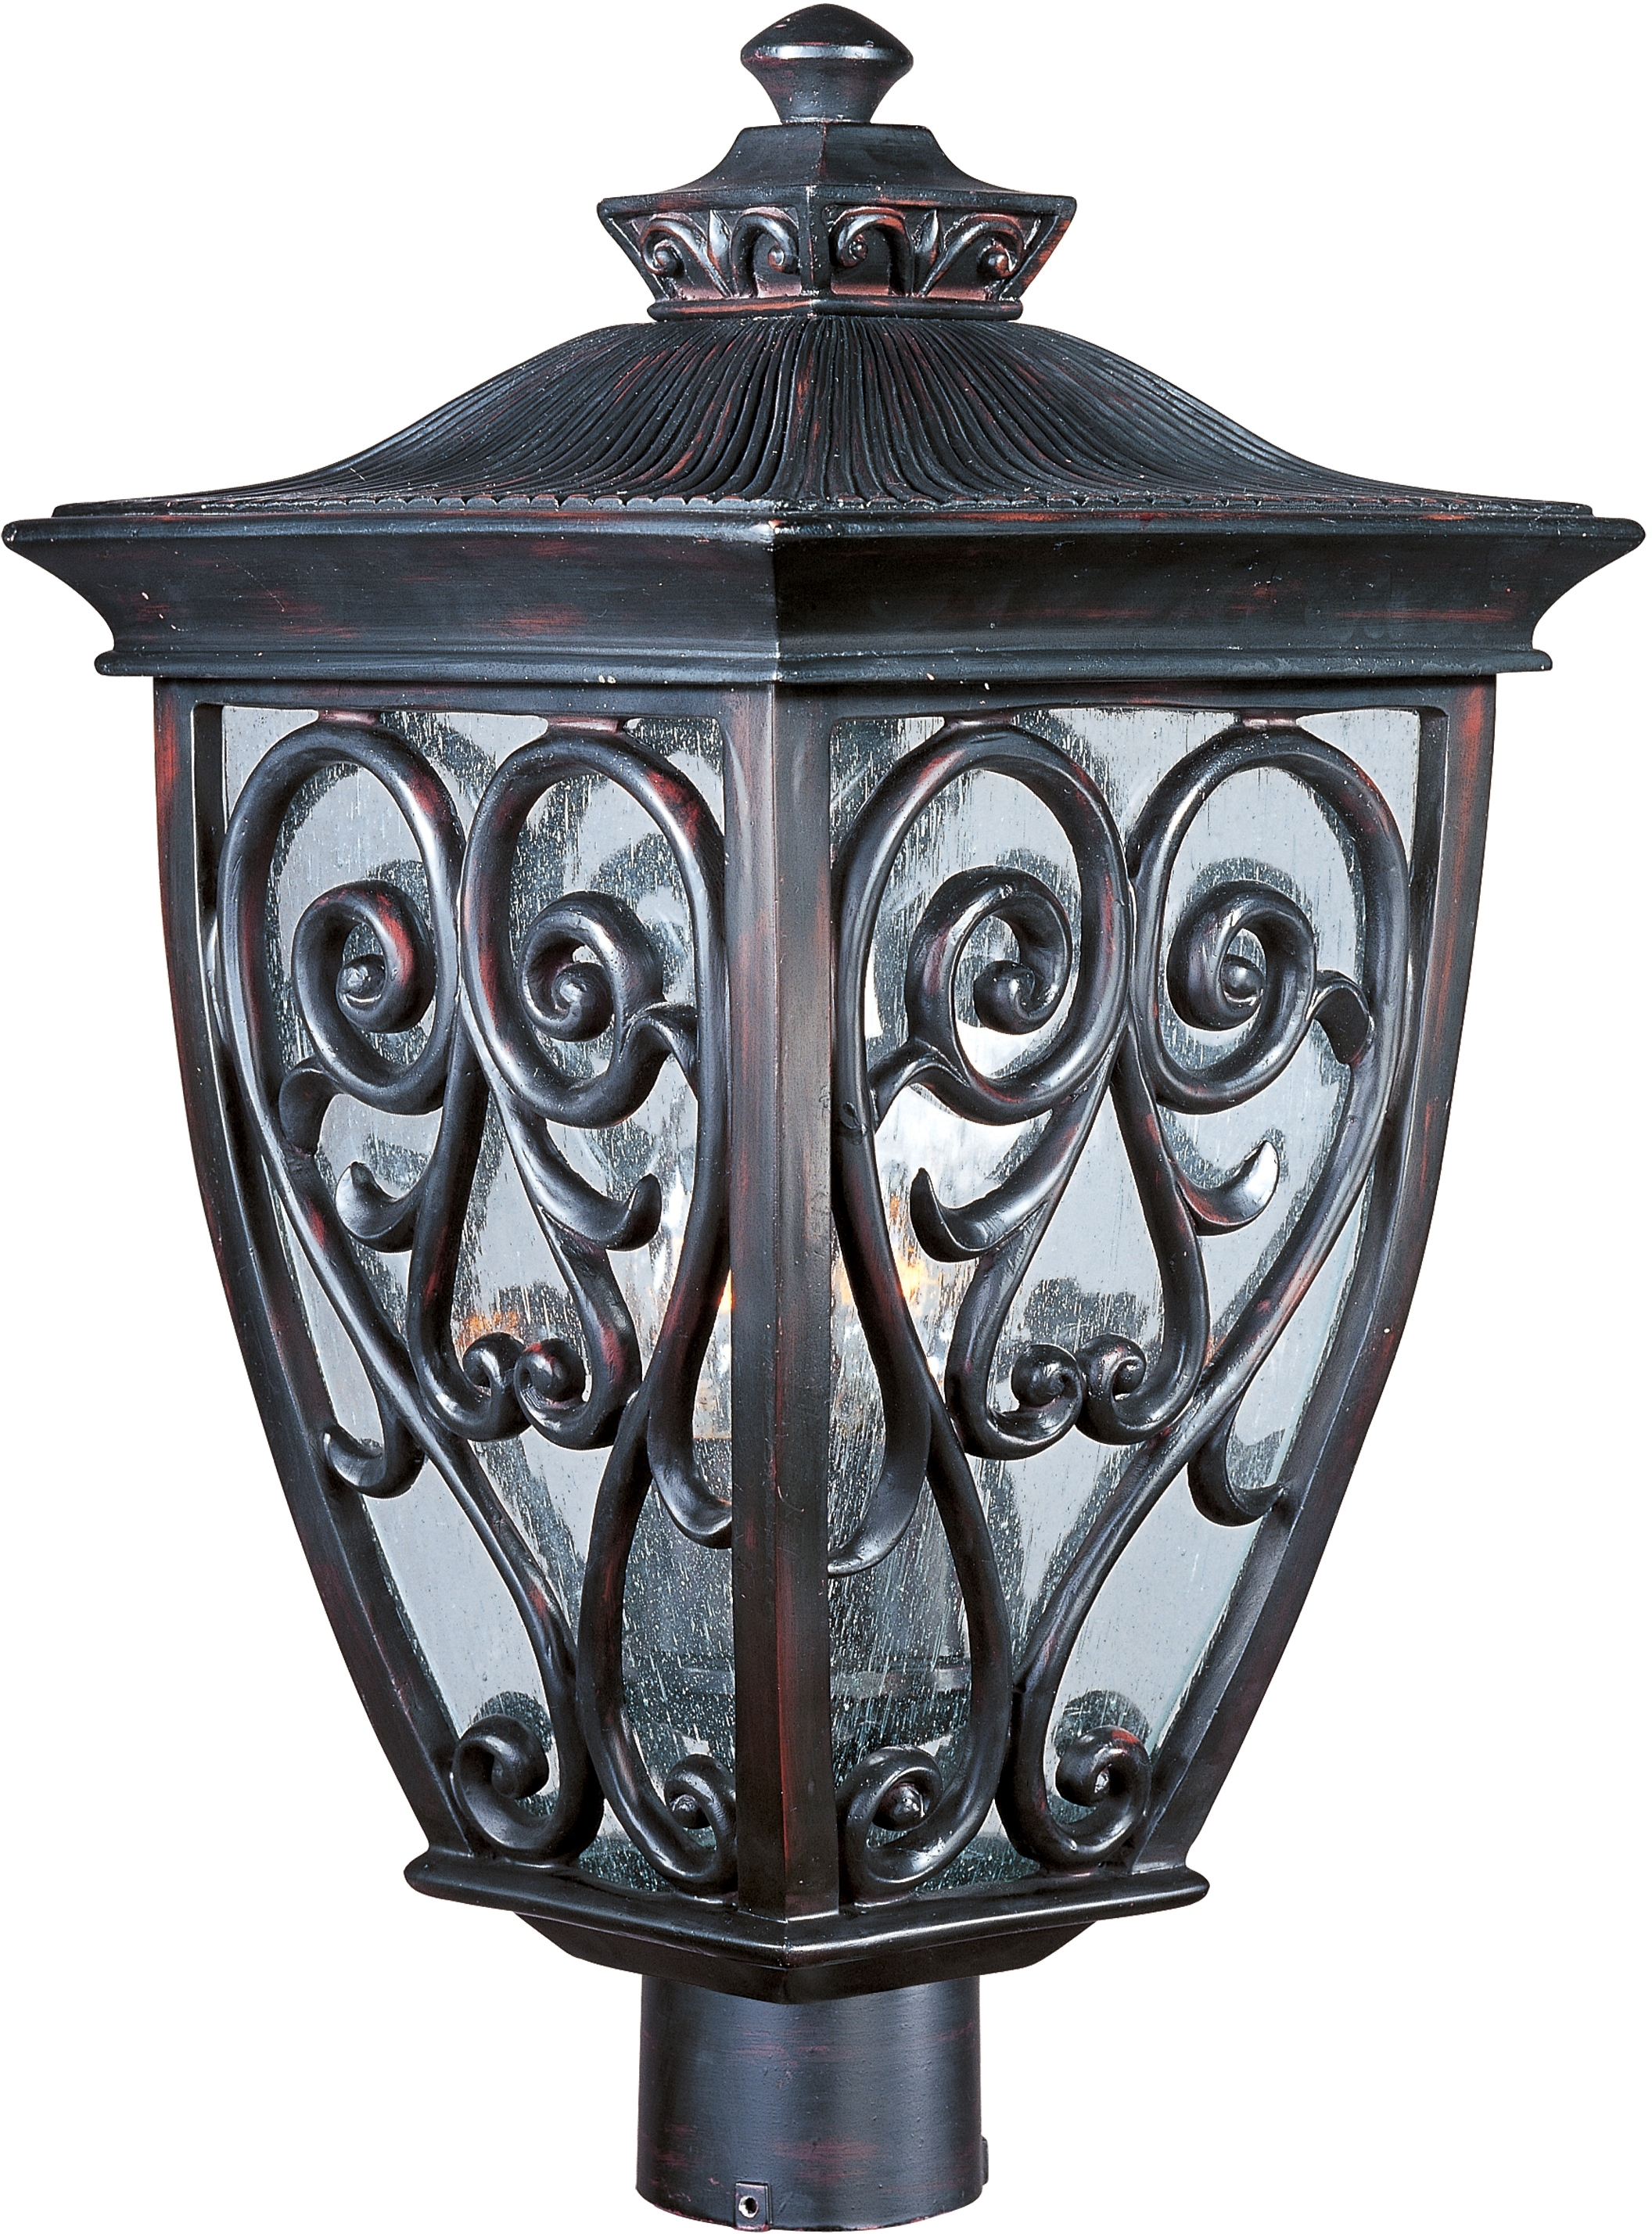 Maxim Intended For Popular Outdoor Pole Lanterns (View 7 of 20)